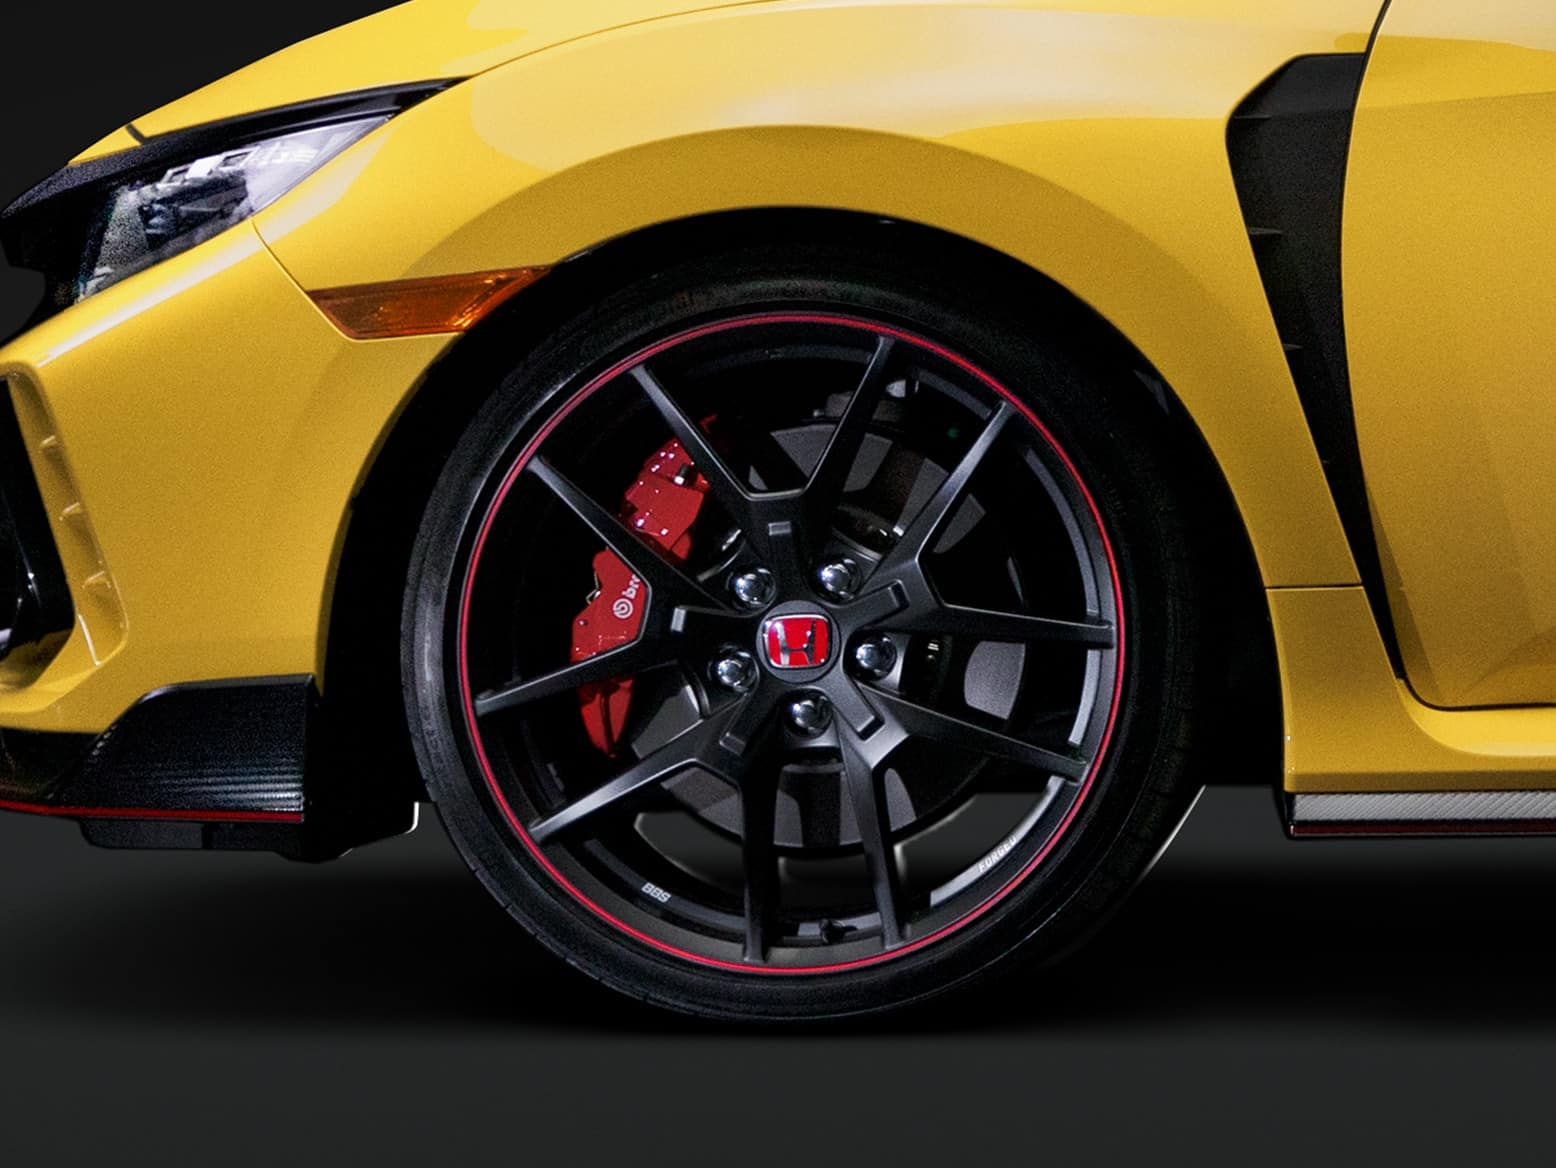 2021 Honda civic type r with bbs forged aluminum 20 inch wheels